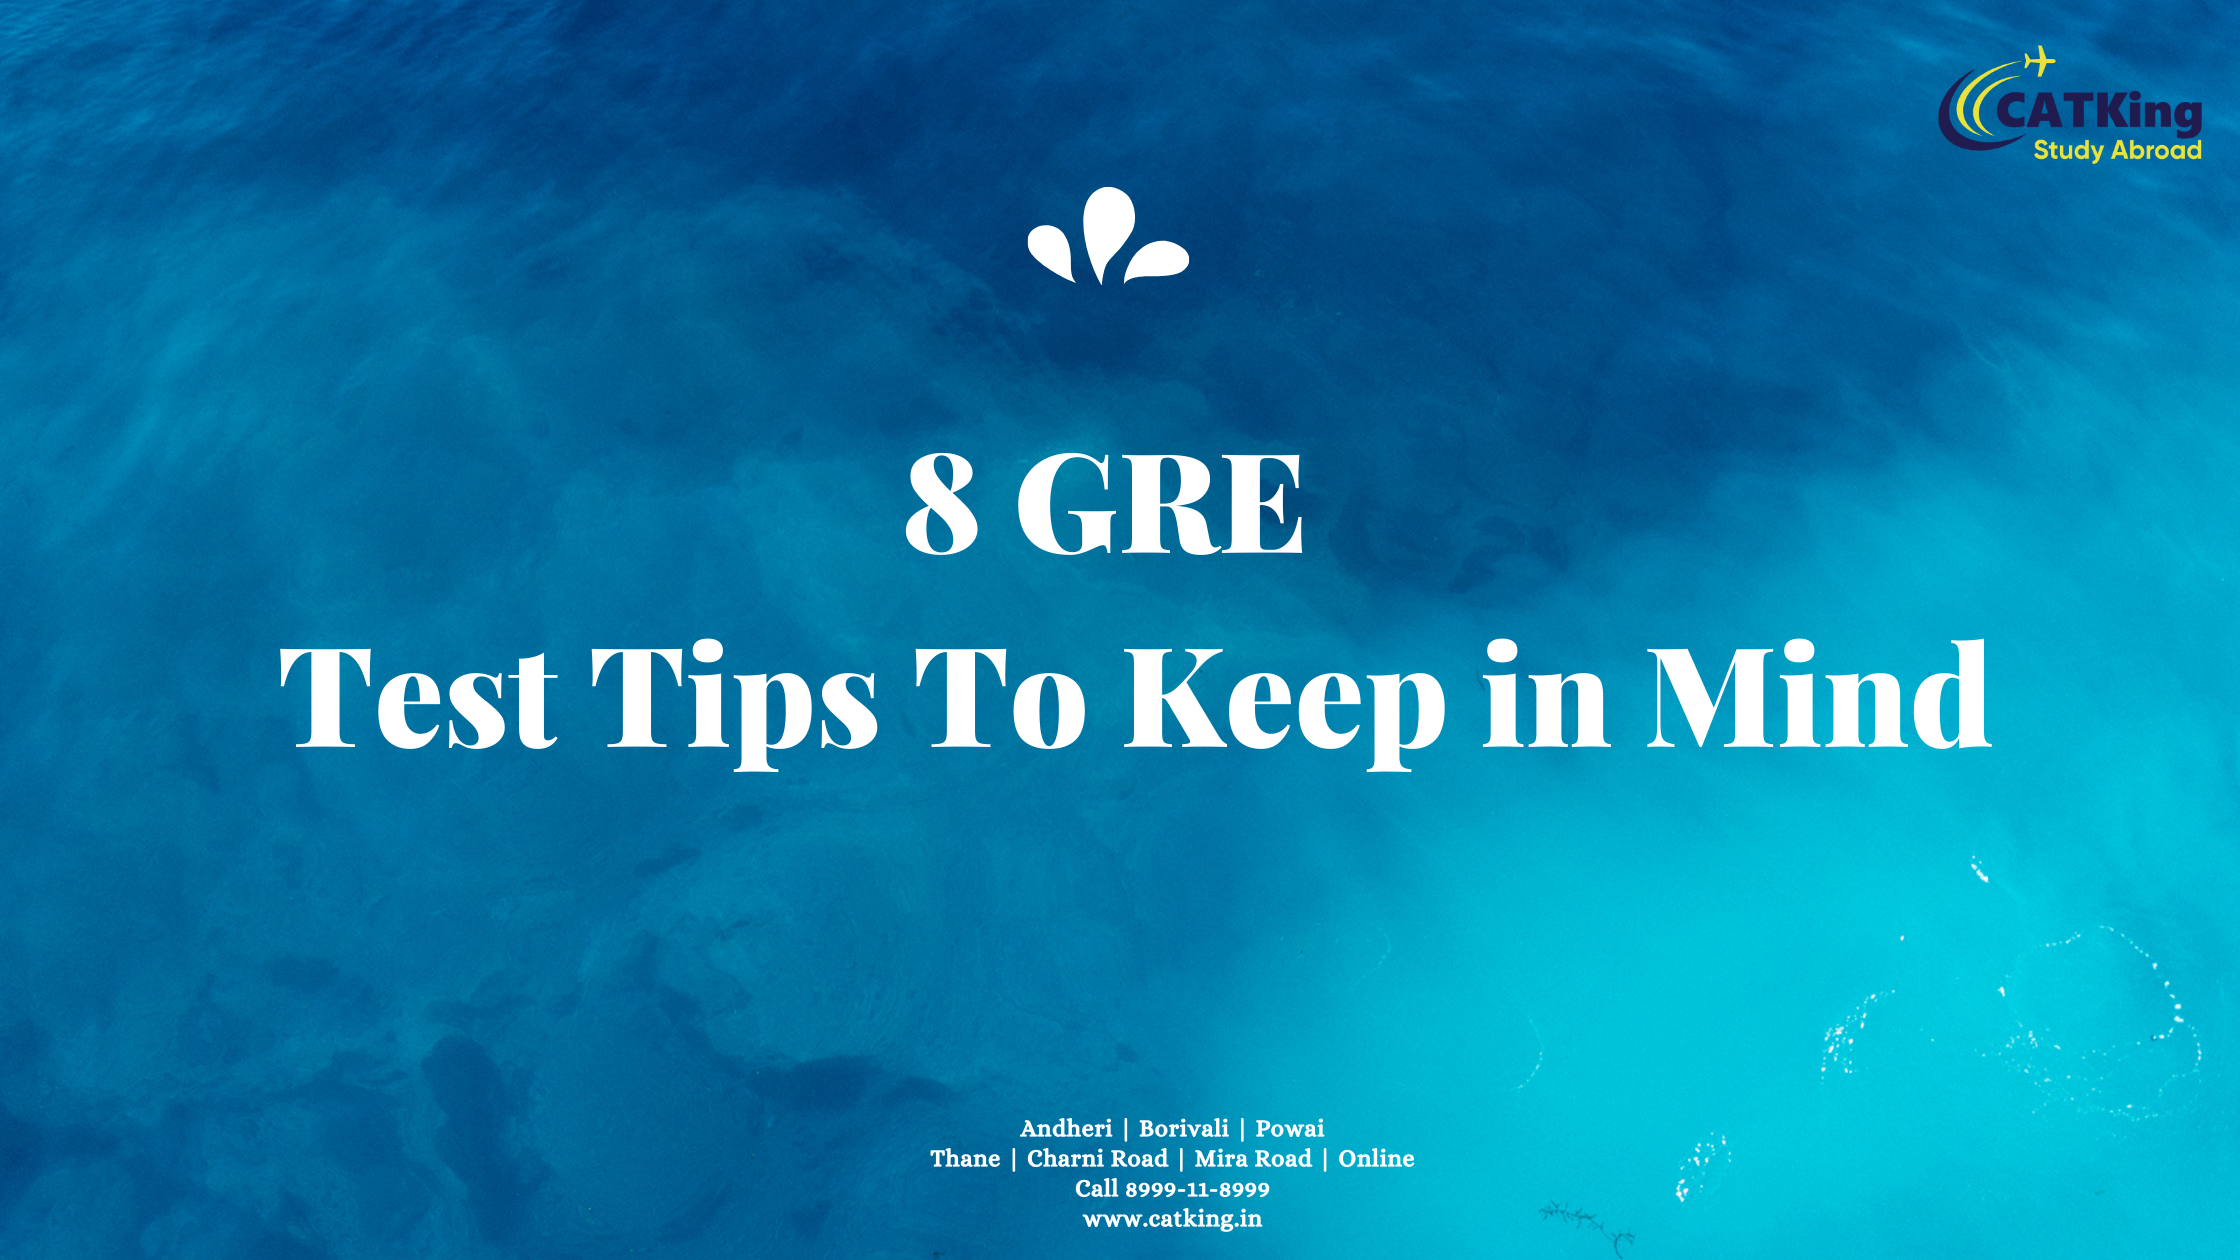 8 GRE Test Tips To Keep in Mind